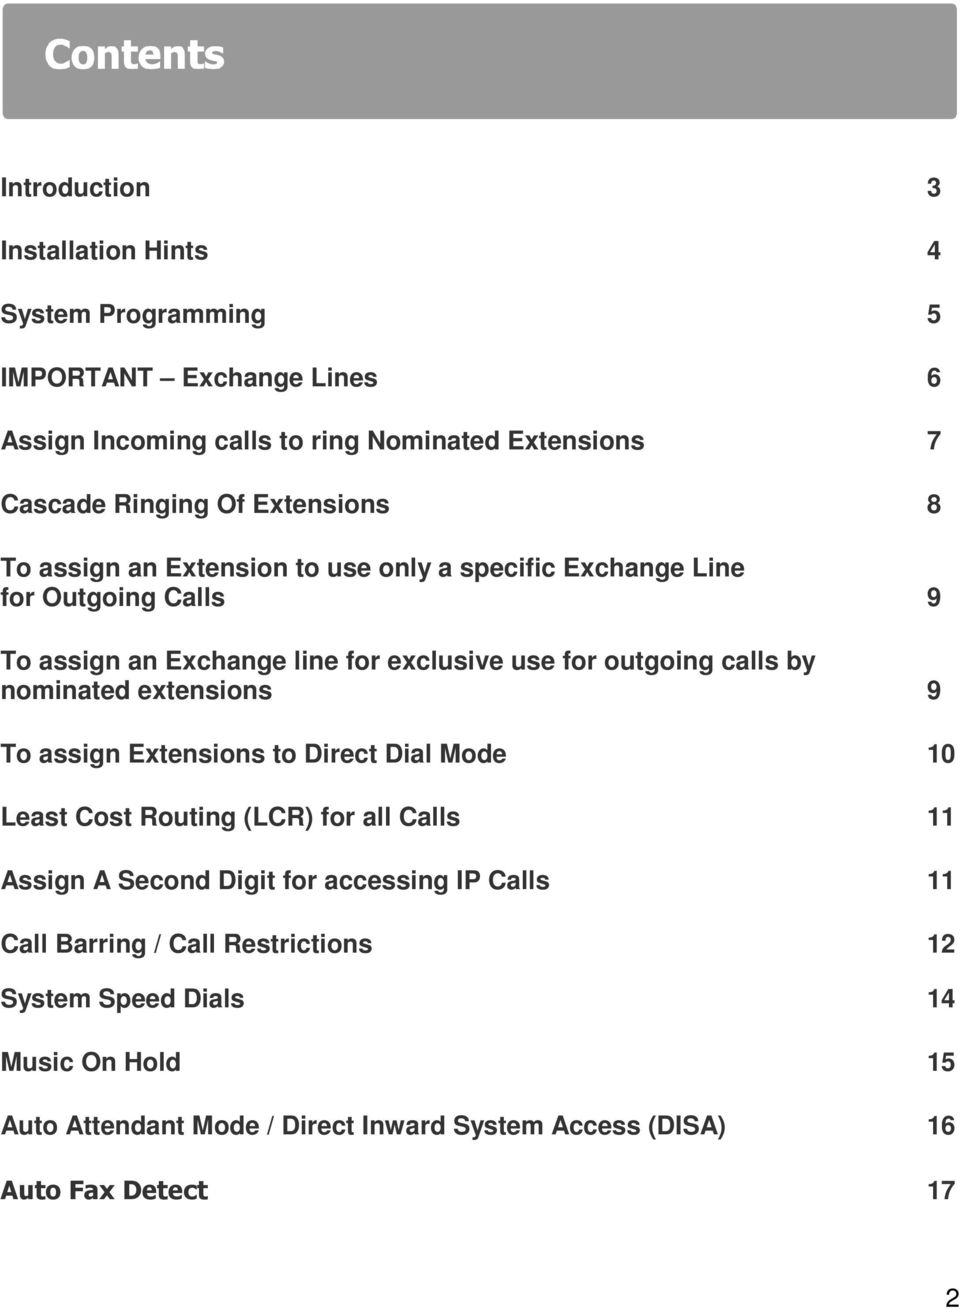 by nominated extensions 9 To assign Extensions to Direct Dial Mode 10 Least Cost Routing (LCR) for all Calls 11 Assign A Second Digit for accessing IP Calls